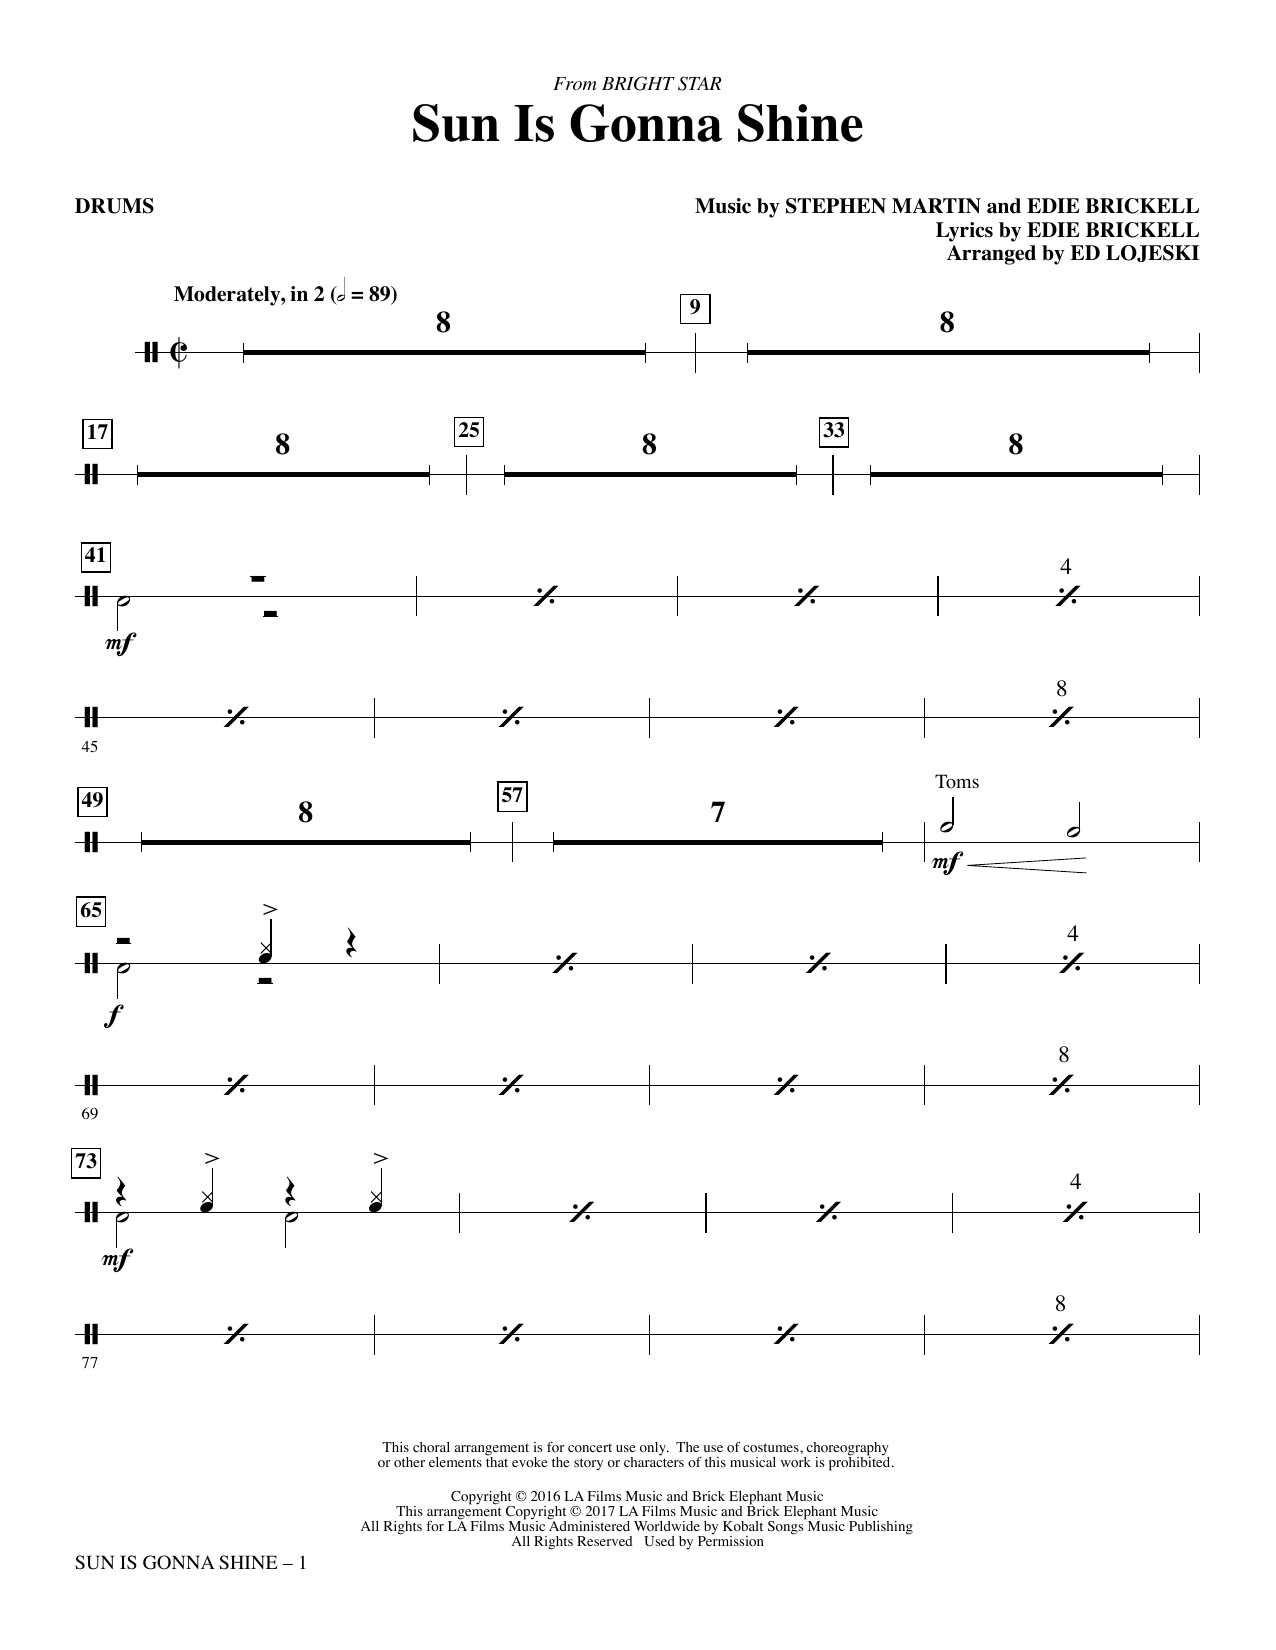 Sun Is Gonna Shine (from Bright Star) - Drums Sheet Music